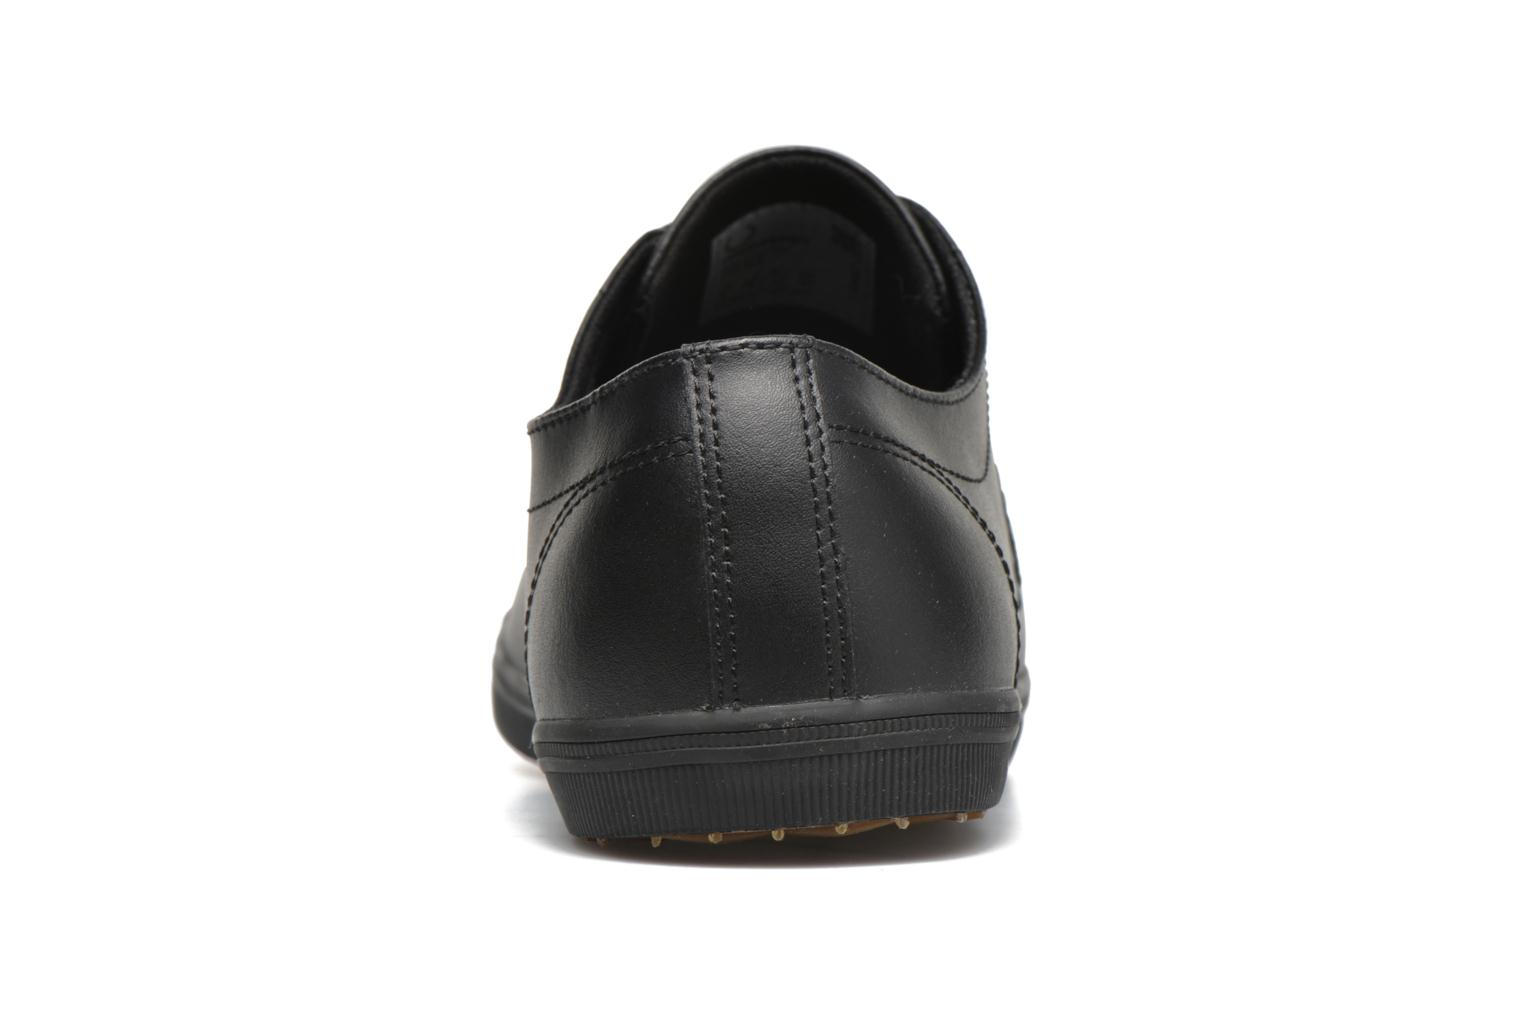 Kingston Leather Blackblack